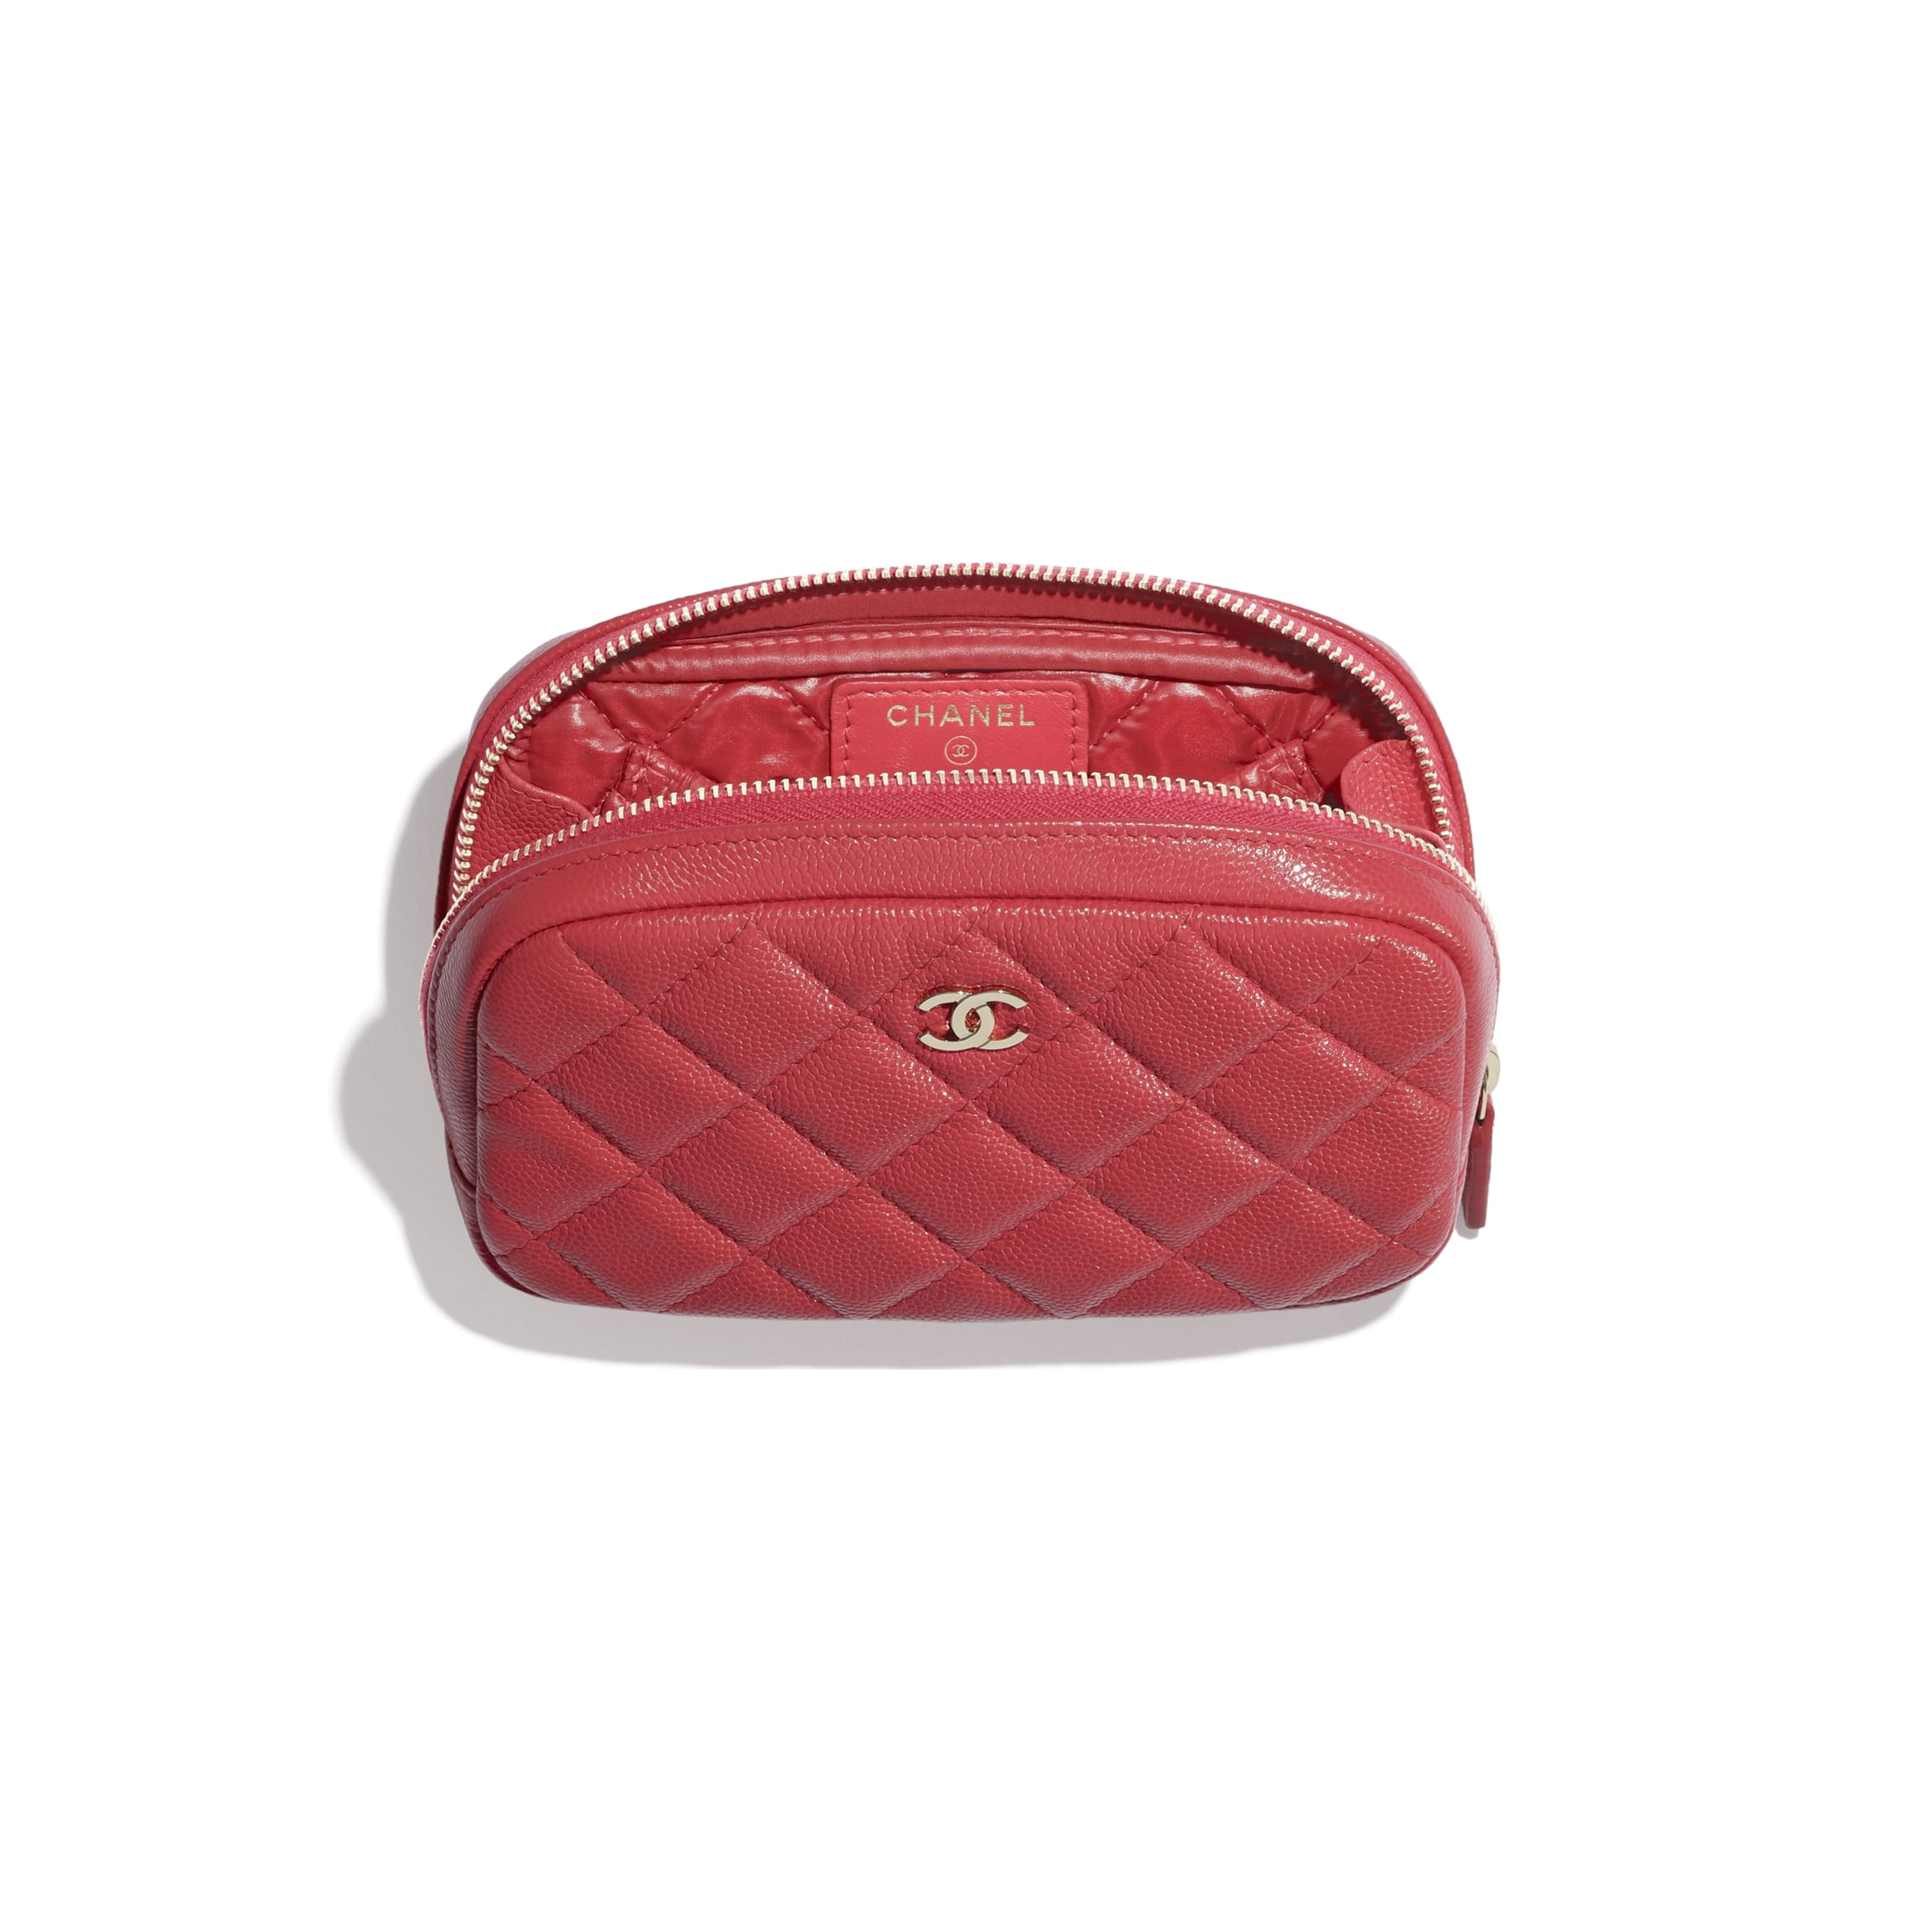 Classic Case - Red - Grained Calfskin & Gold-Tone Metal - CHANEL - Alternative view - see standard sized version